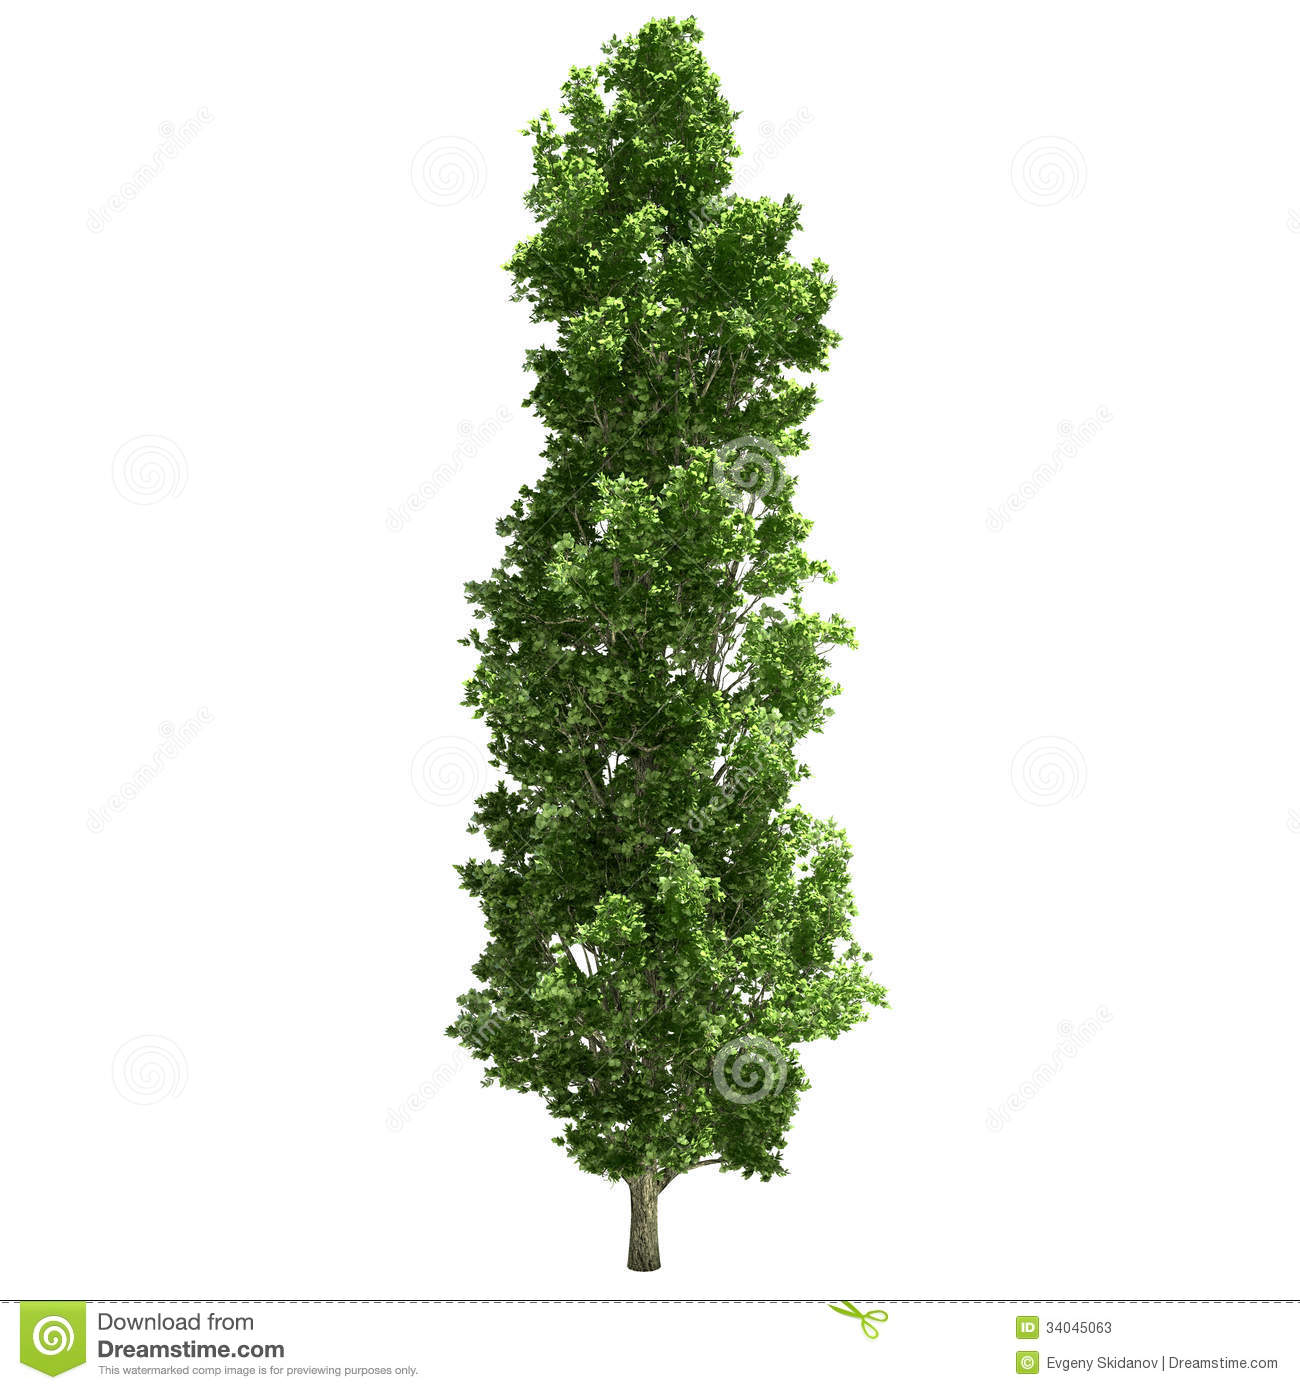 poplar tree single.